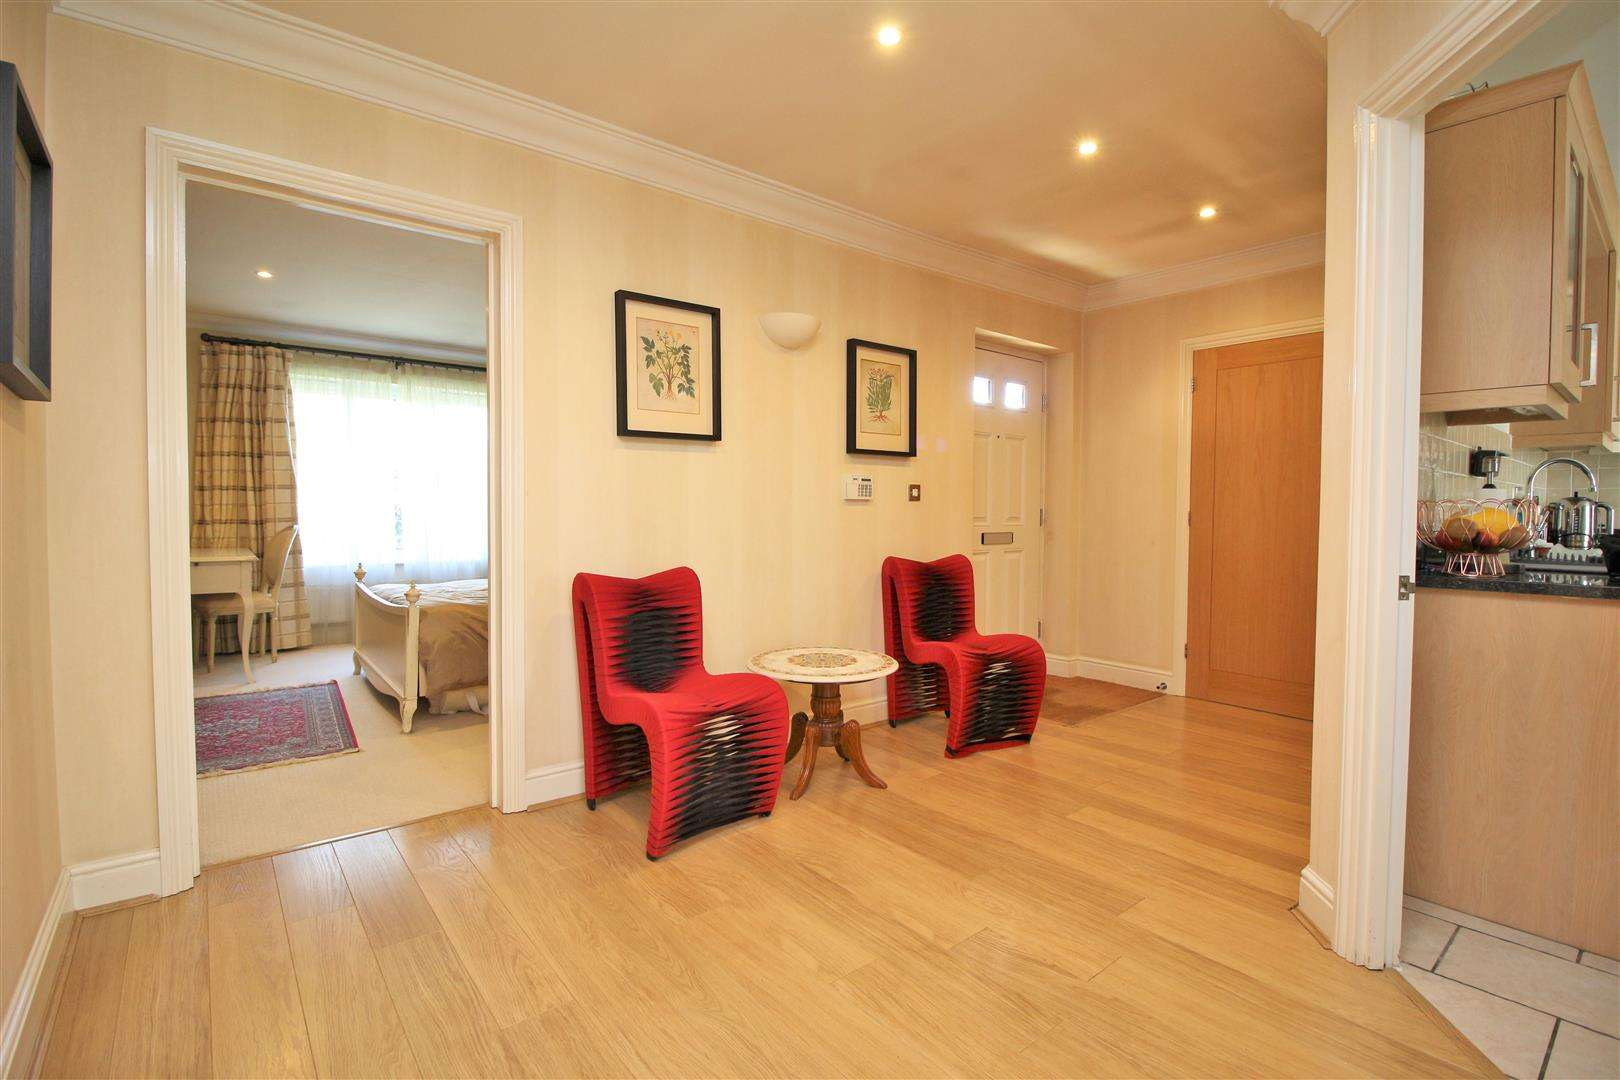 4 bed to rent in Bushey Heath - (Property Image 6)